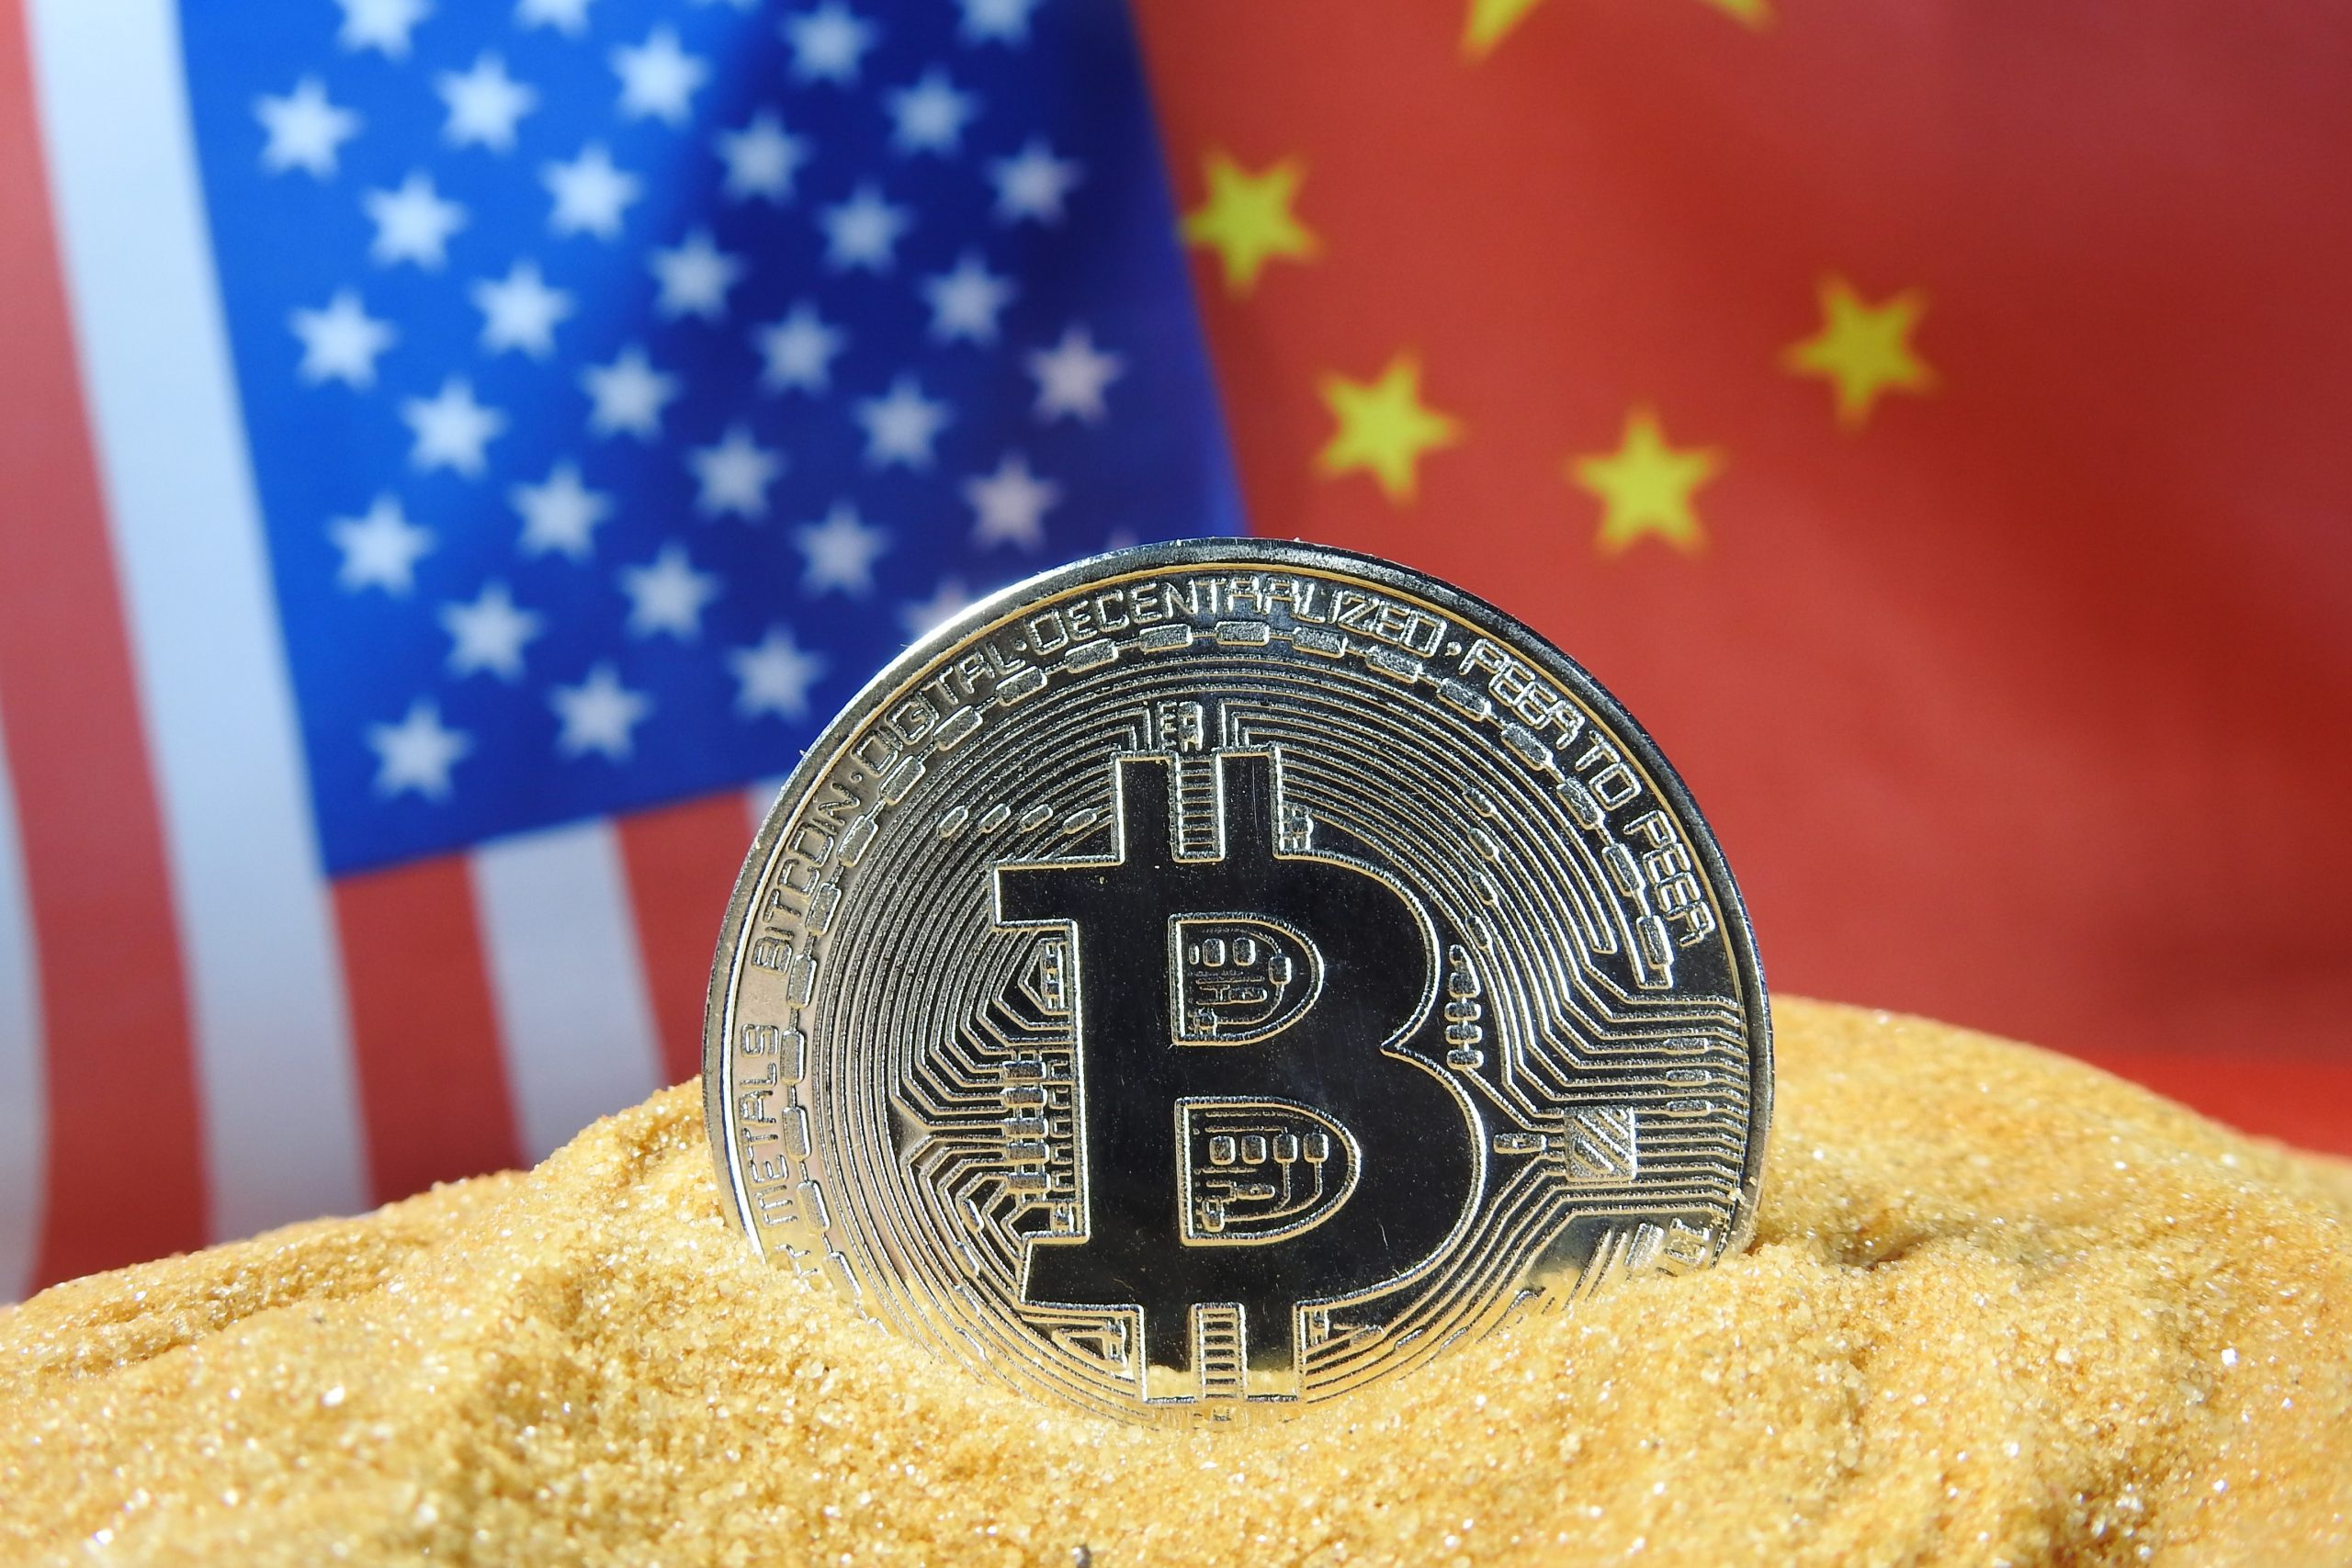 China's central bank has announced that all crypto-related transactions and services are now illegal. In response, Bitcoin drops down to $41k from $45k. China Announces All Crypto Transactions And Activities Are Illegal As per a report from Bloomberg, China h…